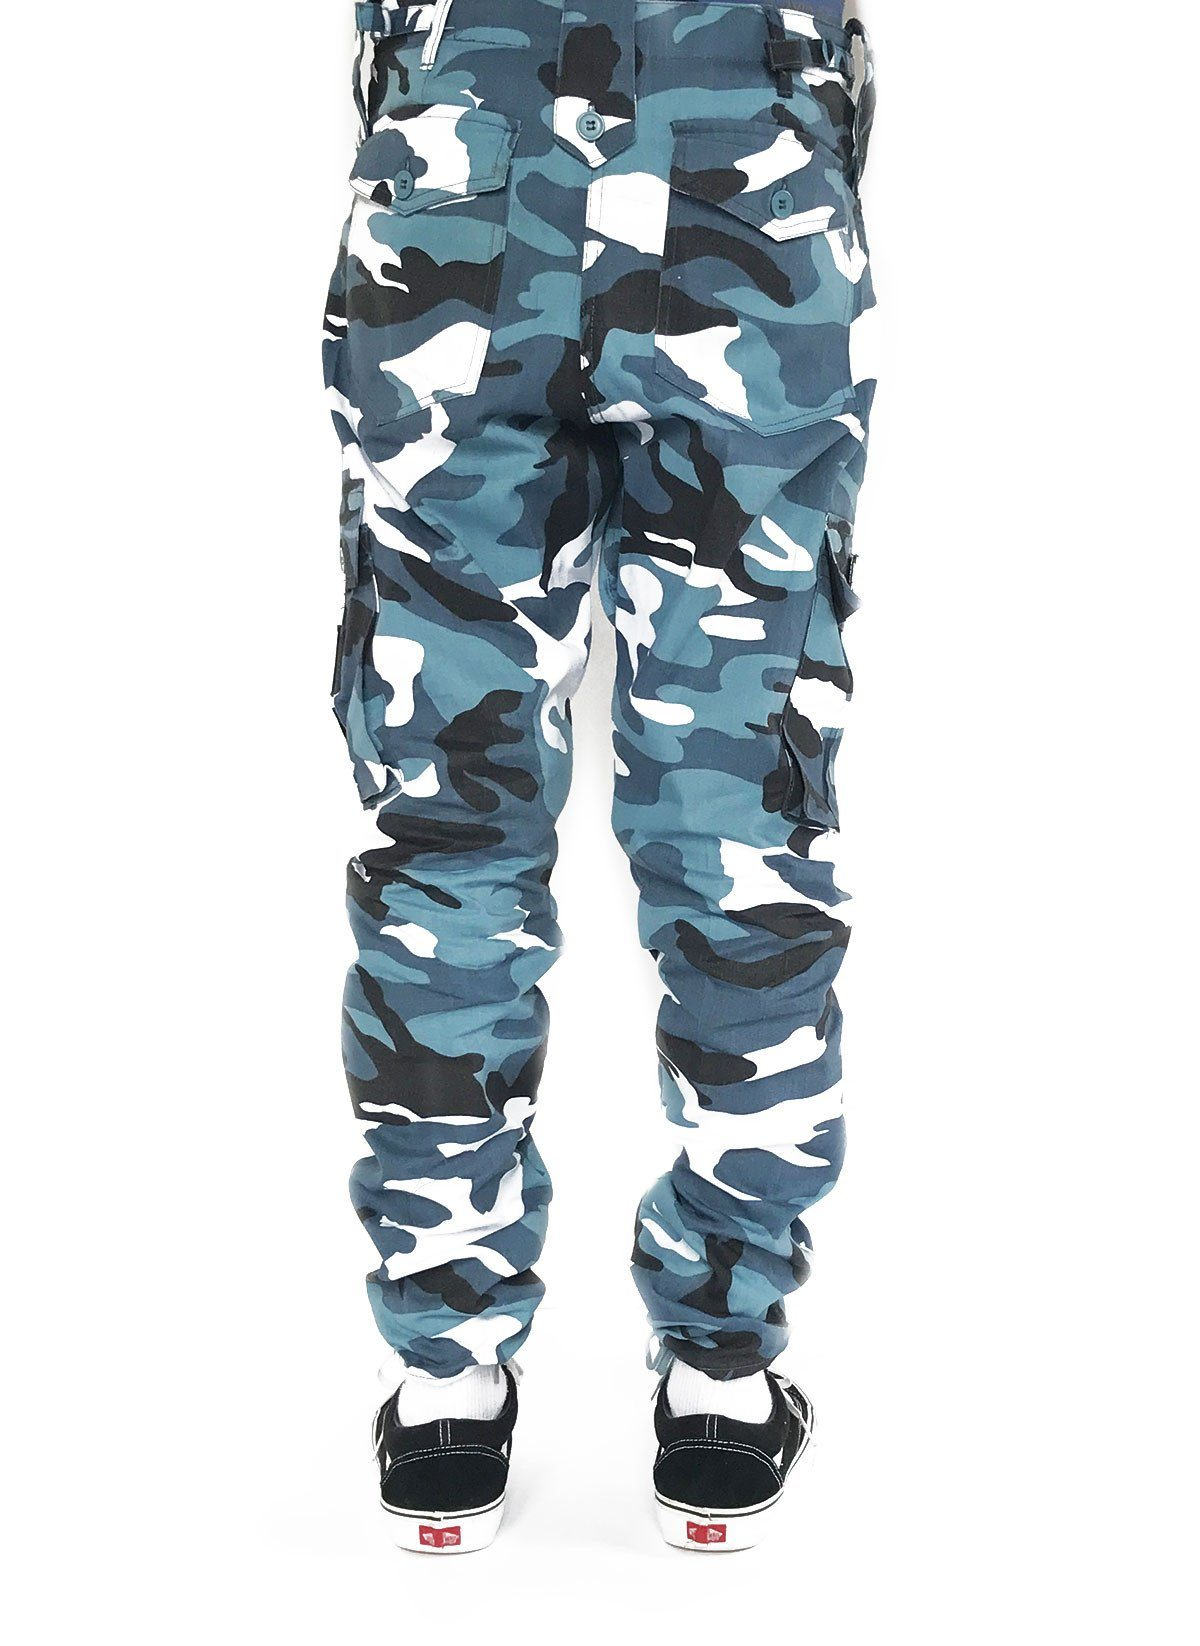 cargo trousers in Blue camo - DXPE CHEF 571d052b0ef